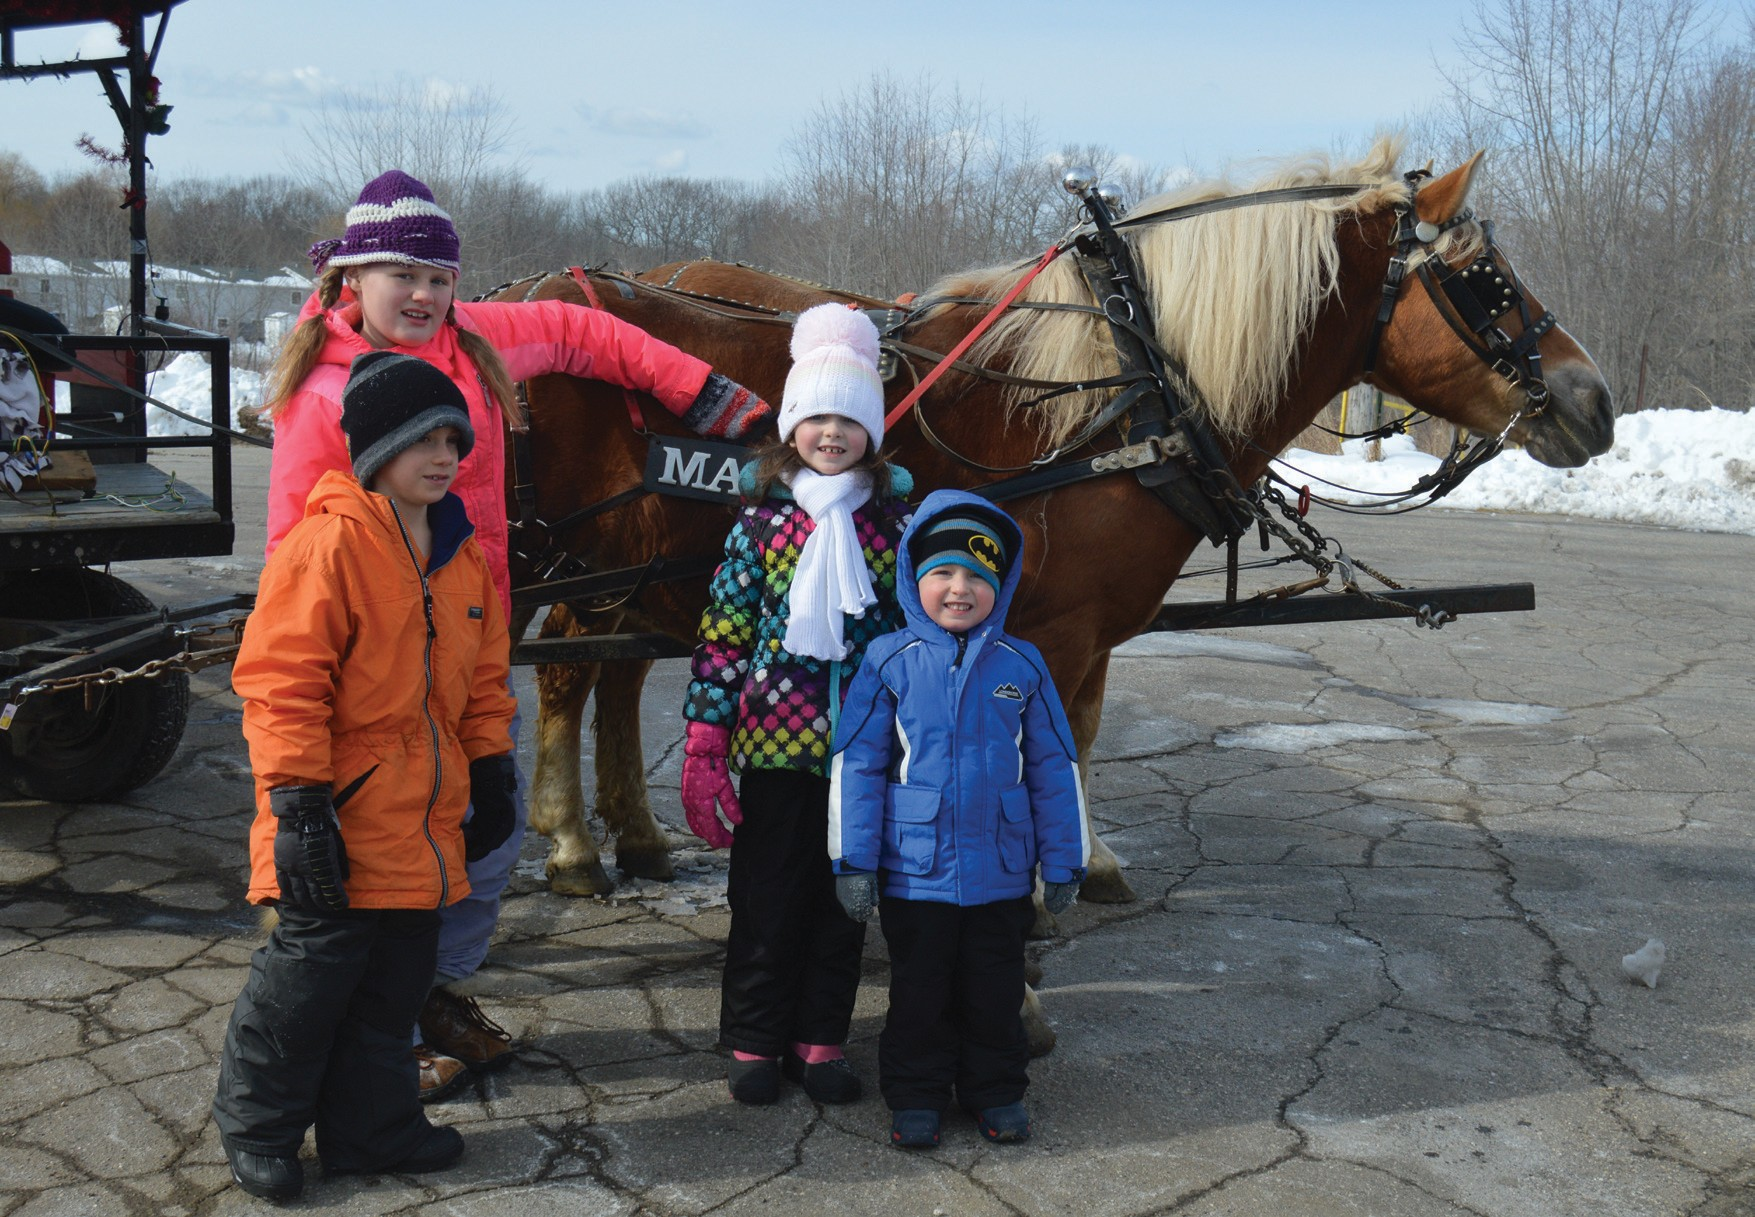 Children stand by the two horses that pulled carriages at Biddeford WinterFest at Rotary Park on Saturday.